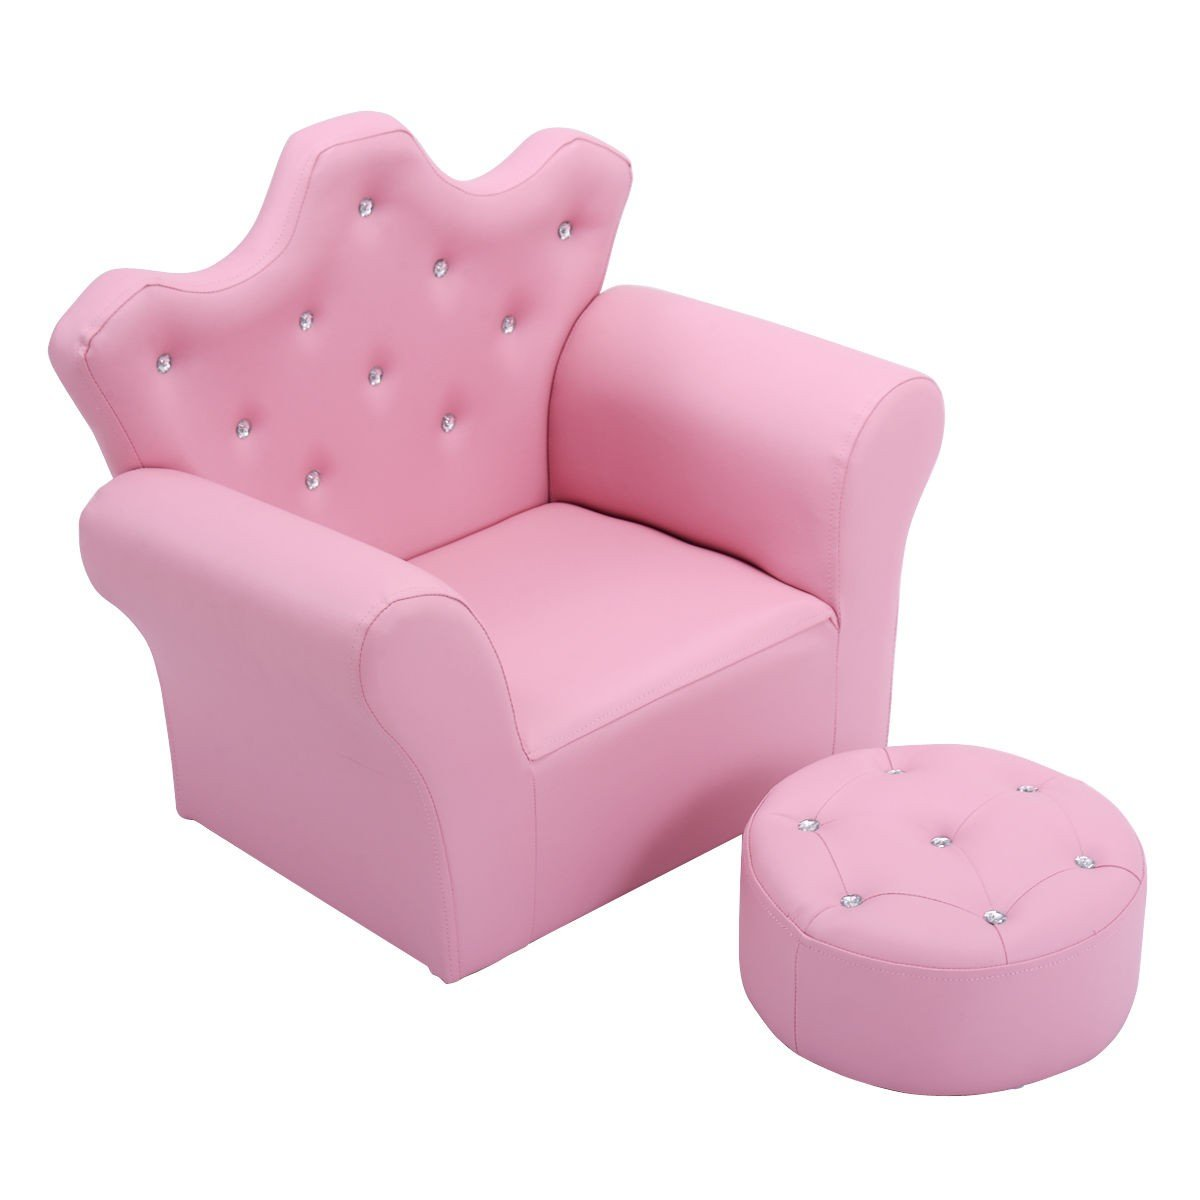 Pink Kids Sofa Armrest Couch with Ottoman